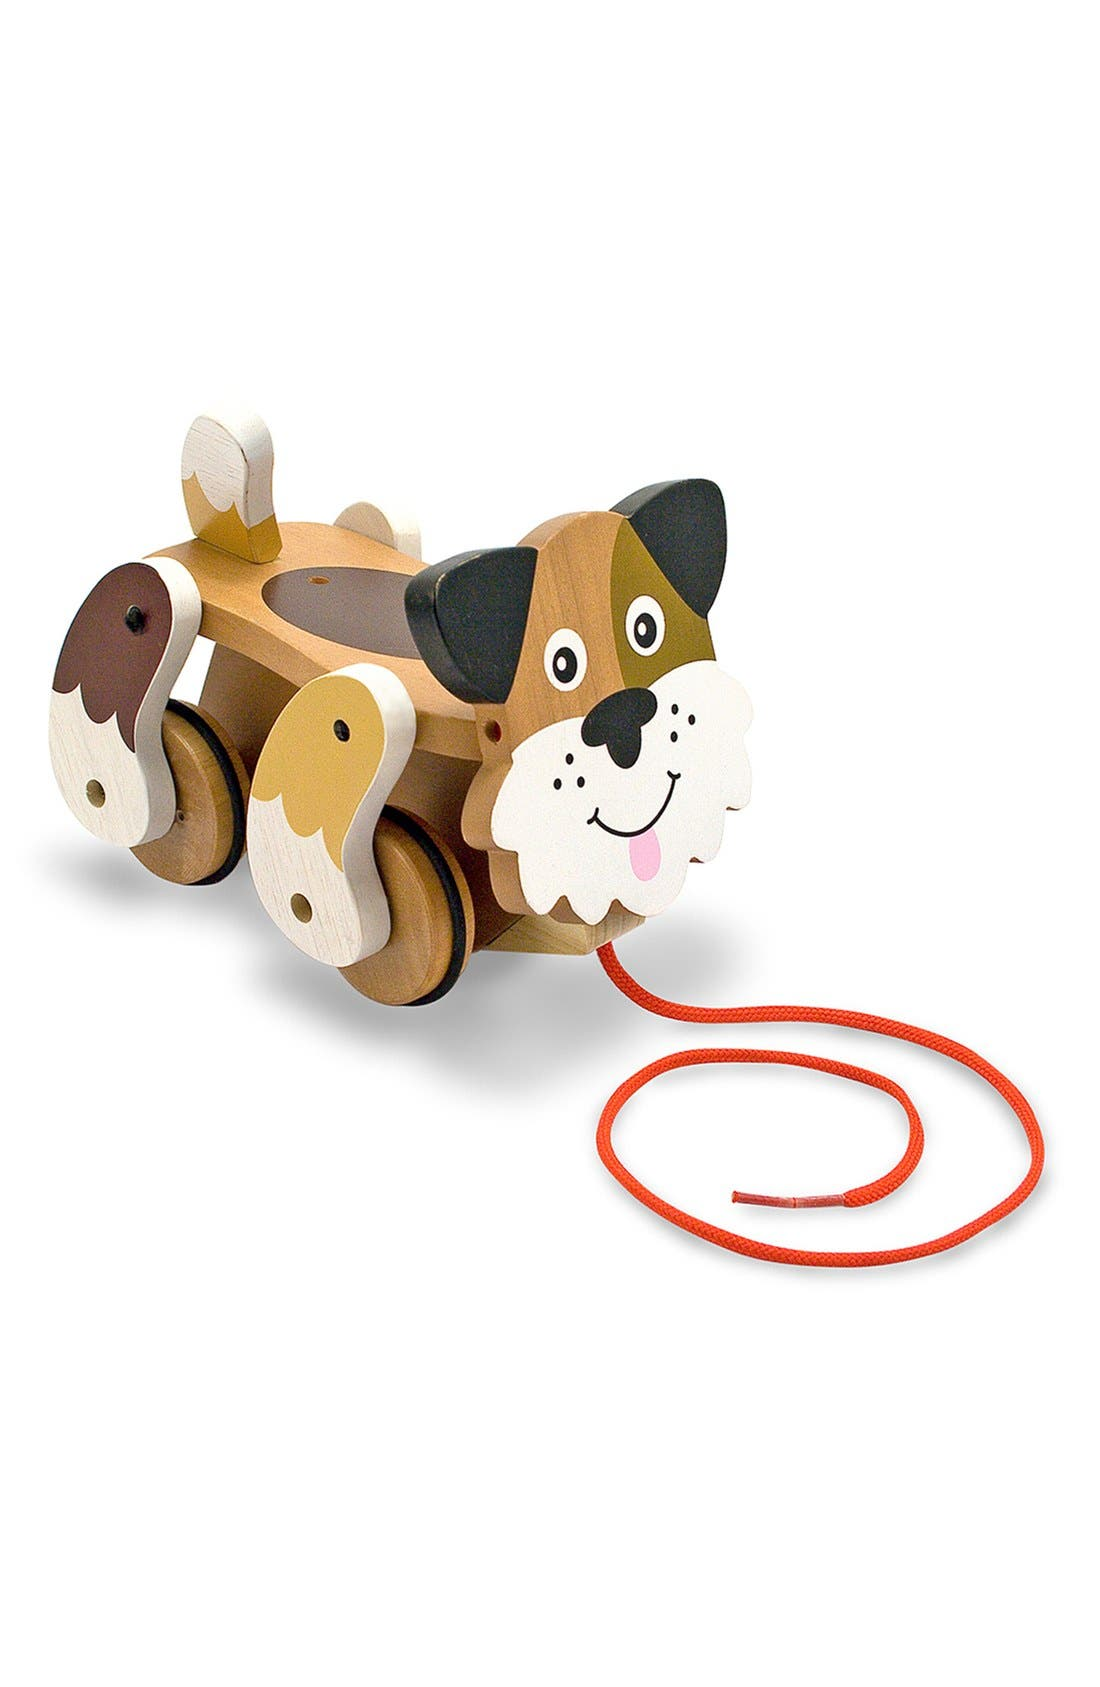 'Playful Puppy' Pull Toy,                             Main thumbnail 1, color,                             200